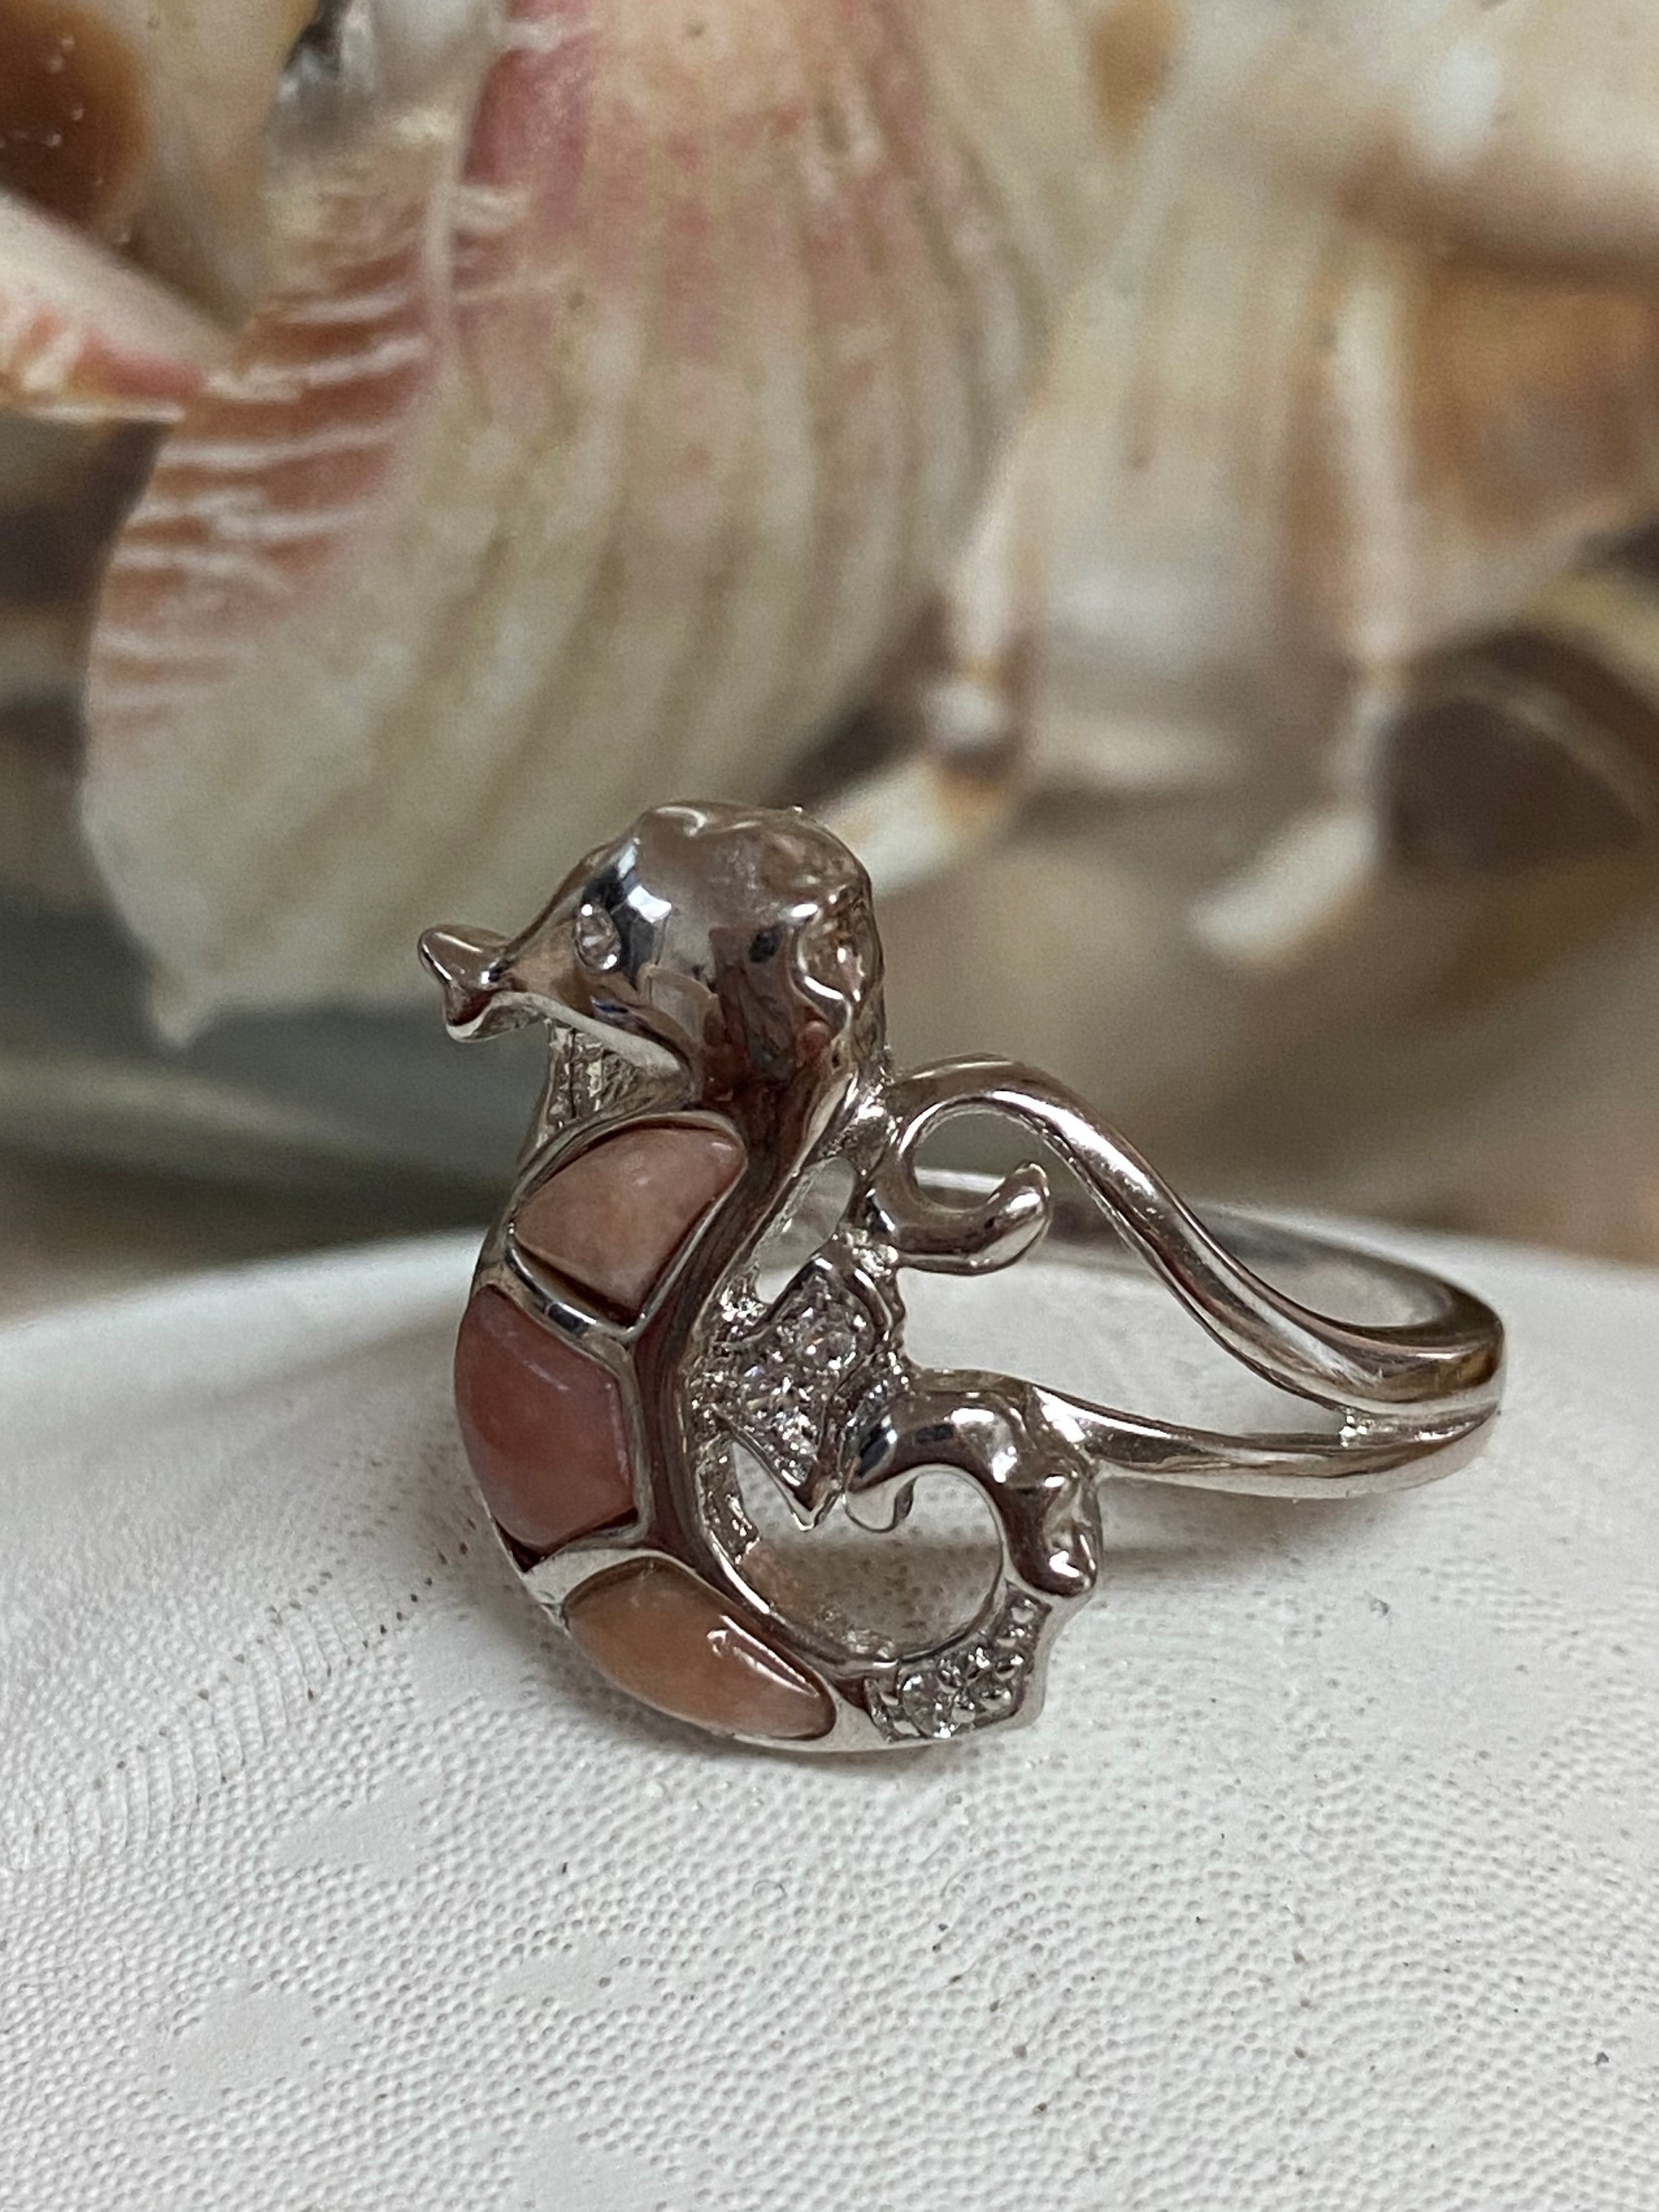 Serenity - Pale pink opal and white topaz seahorse sterling silver ring - Size 7